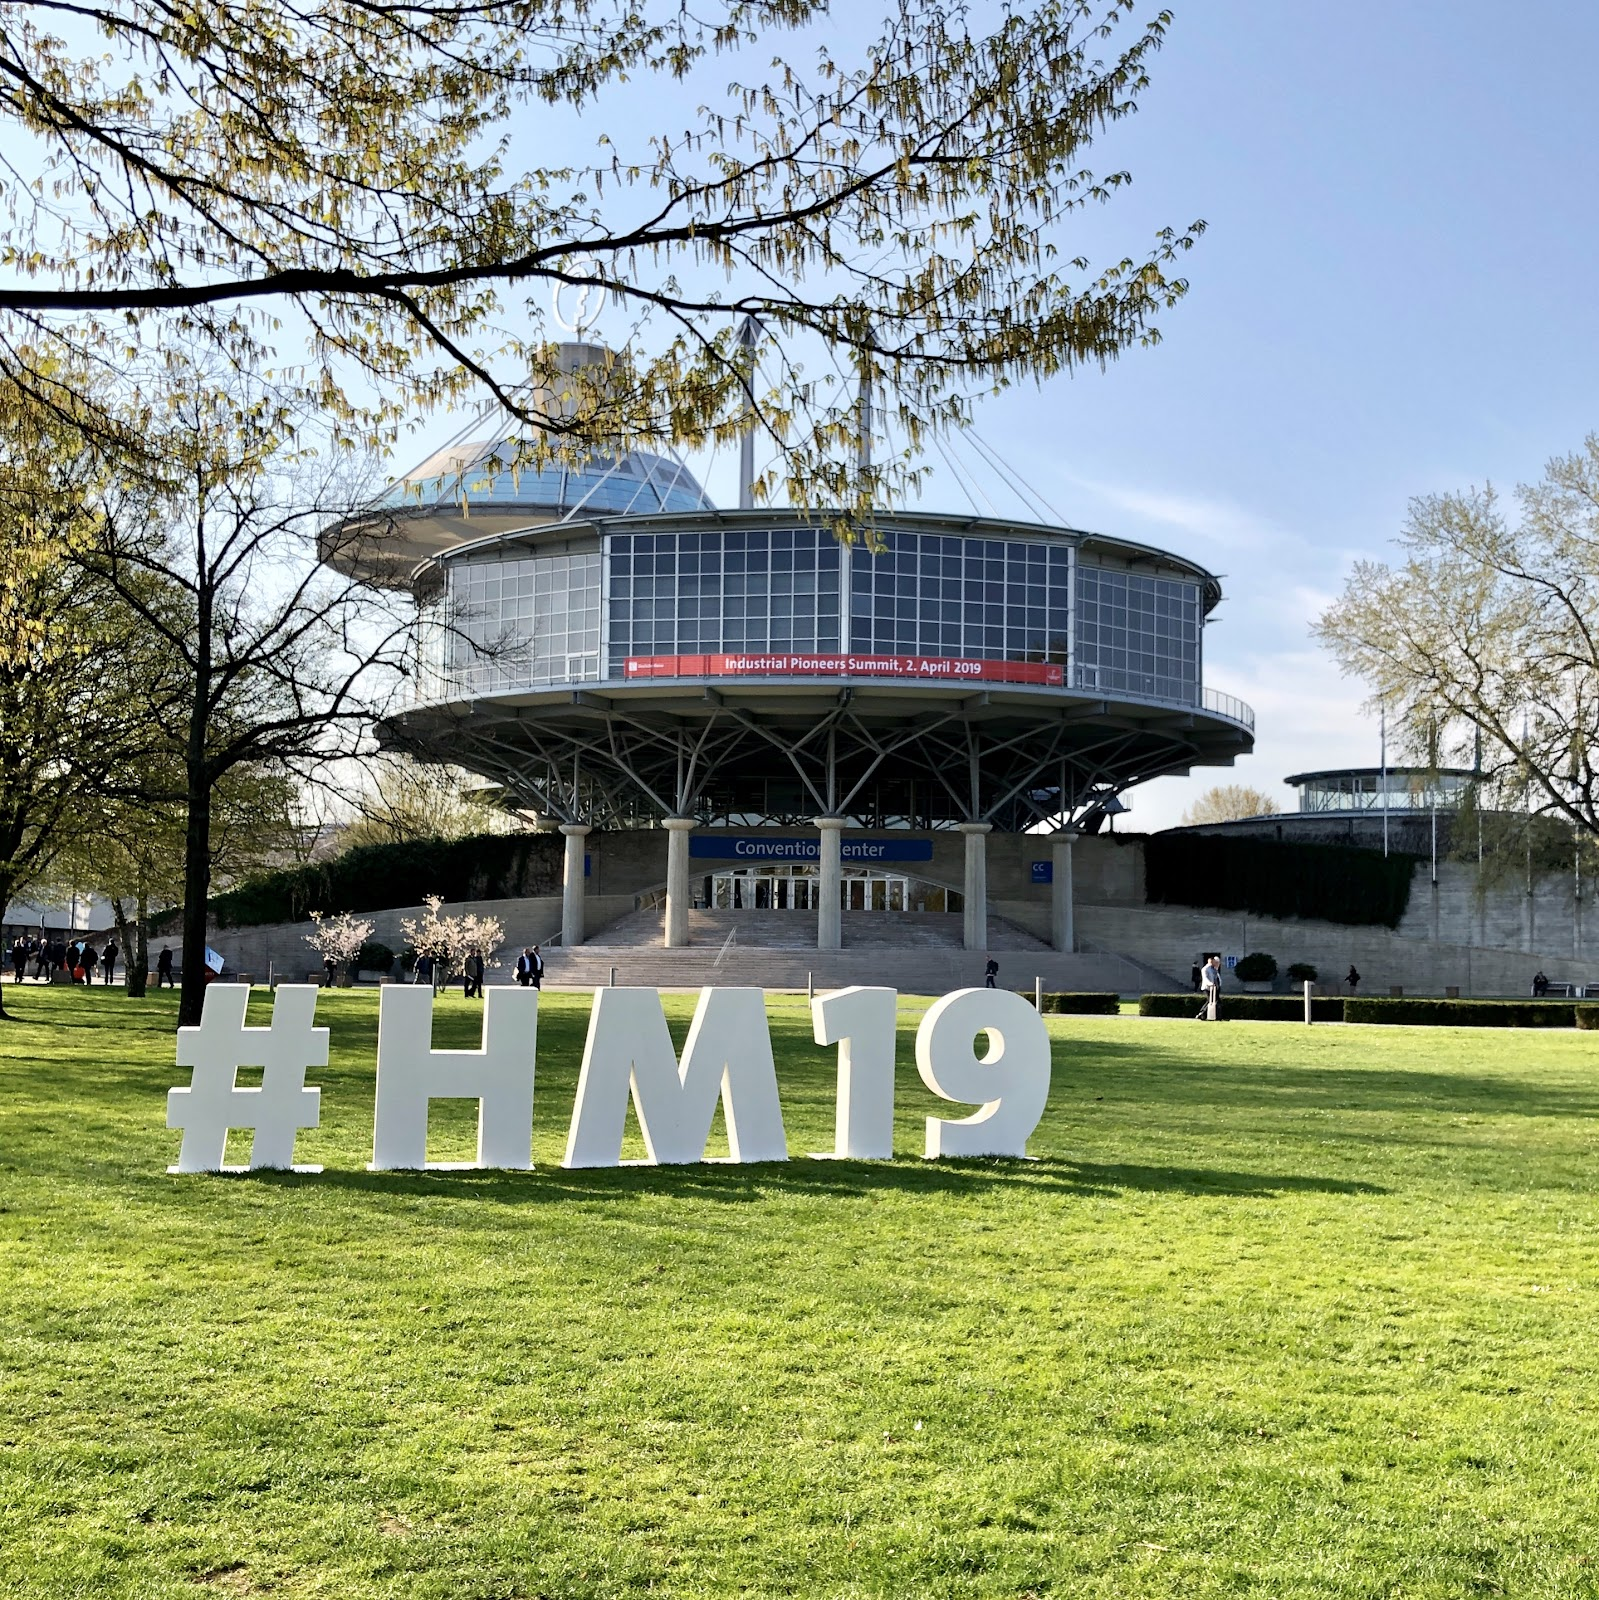 Hannover Messe 2019.